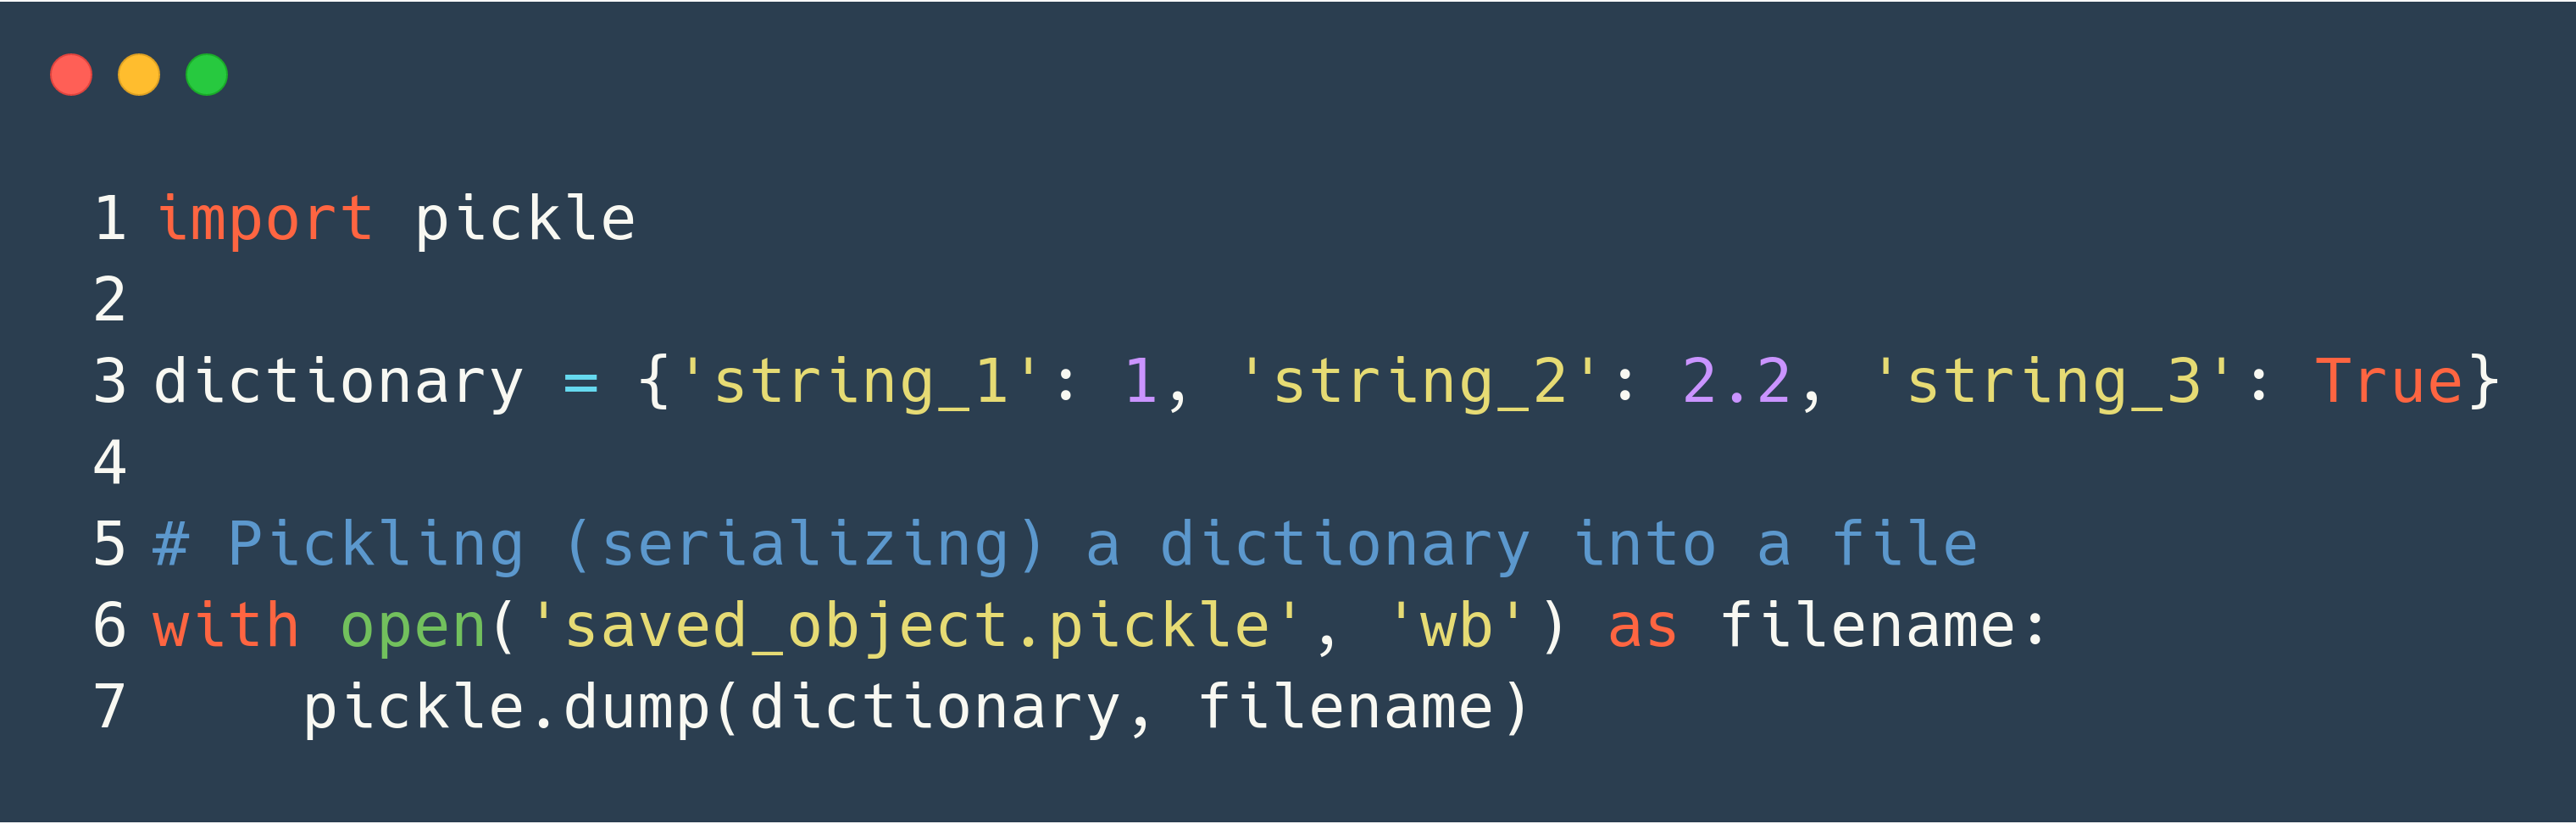 How to Save Dictionaries, Lists, Tuples and Other Objects